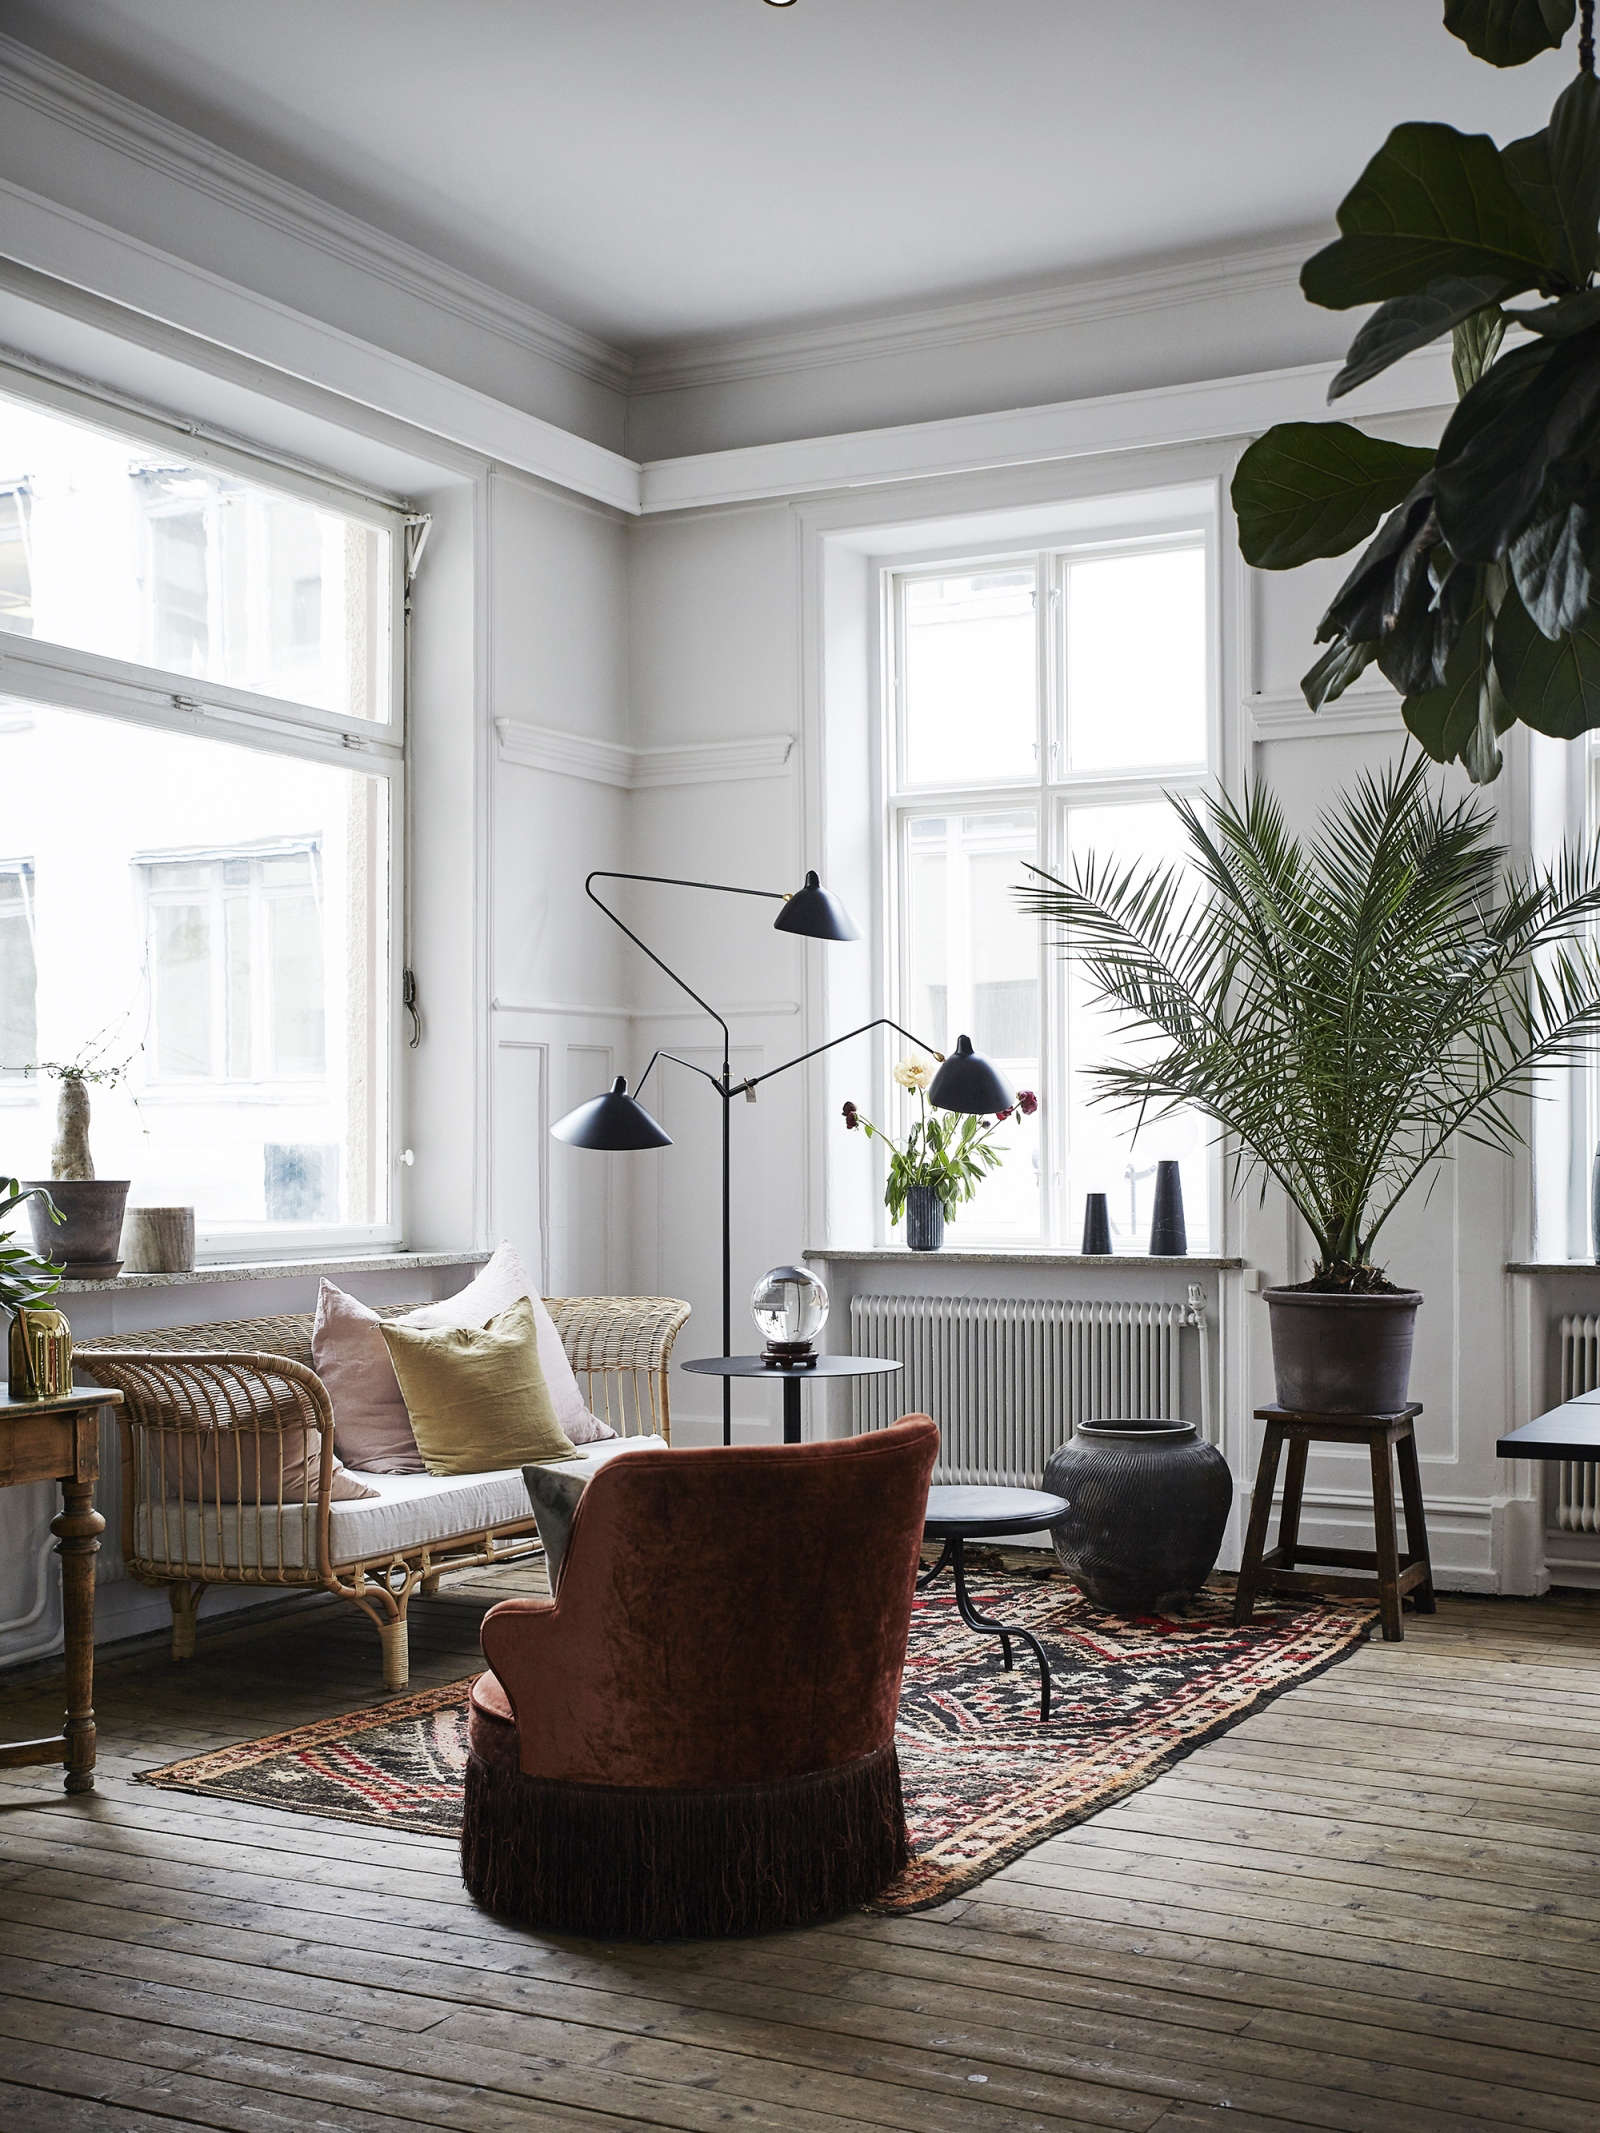 Ikea Göteborg Sofa Trend Alert Rattan Furniture Made Modern Plus 15 To Buy